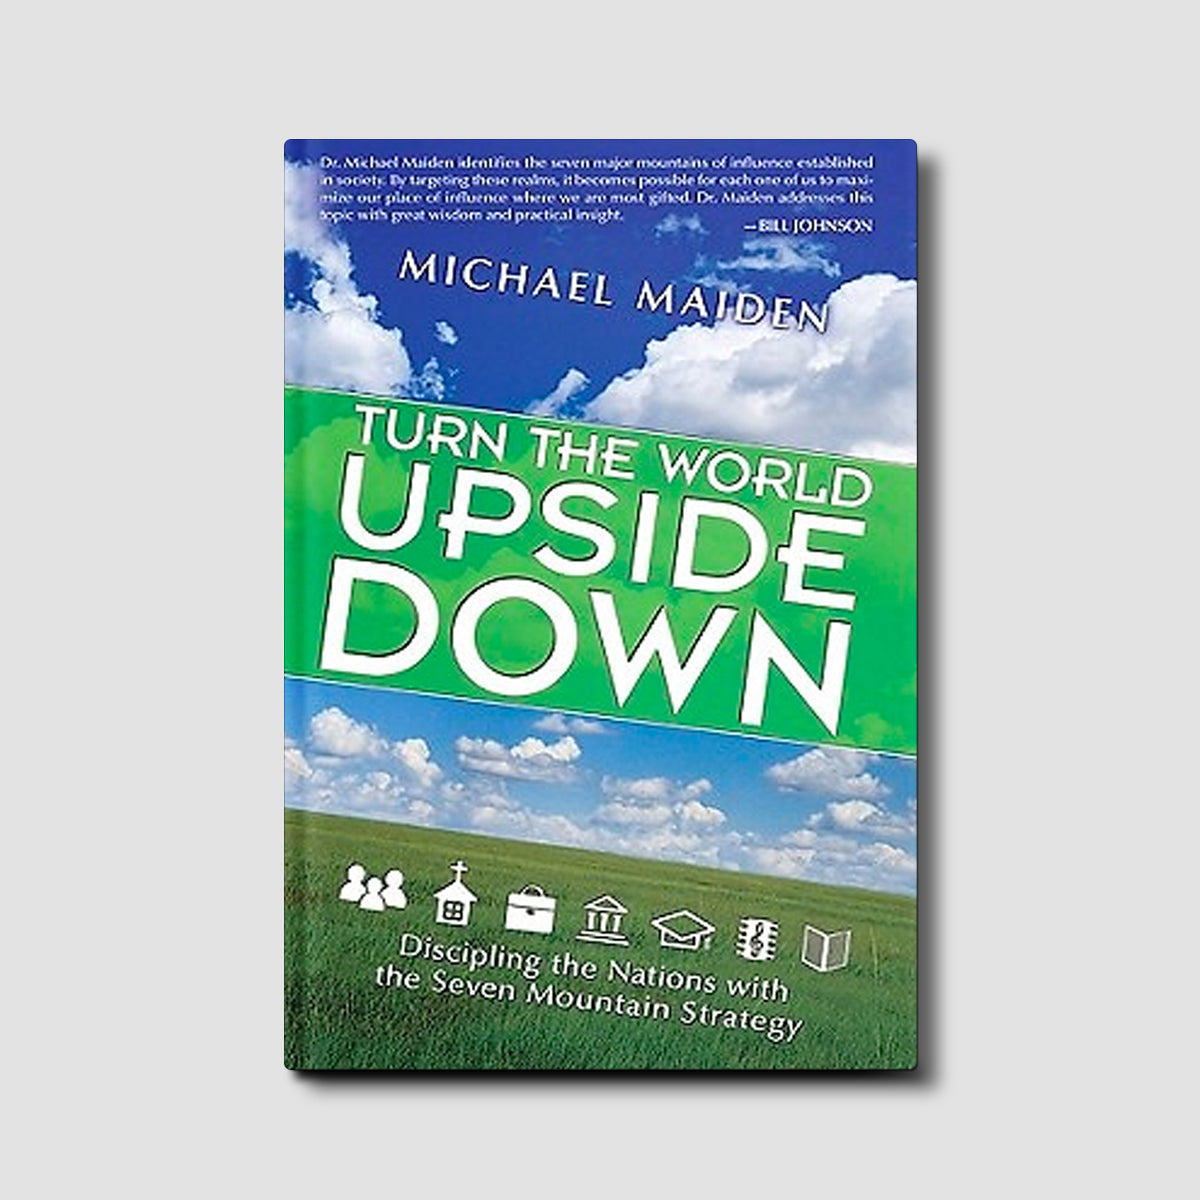 Turn the World Upside Down: Disciplining the Nations with the Seven Mountain Strategy